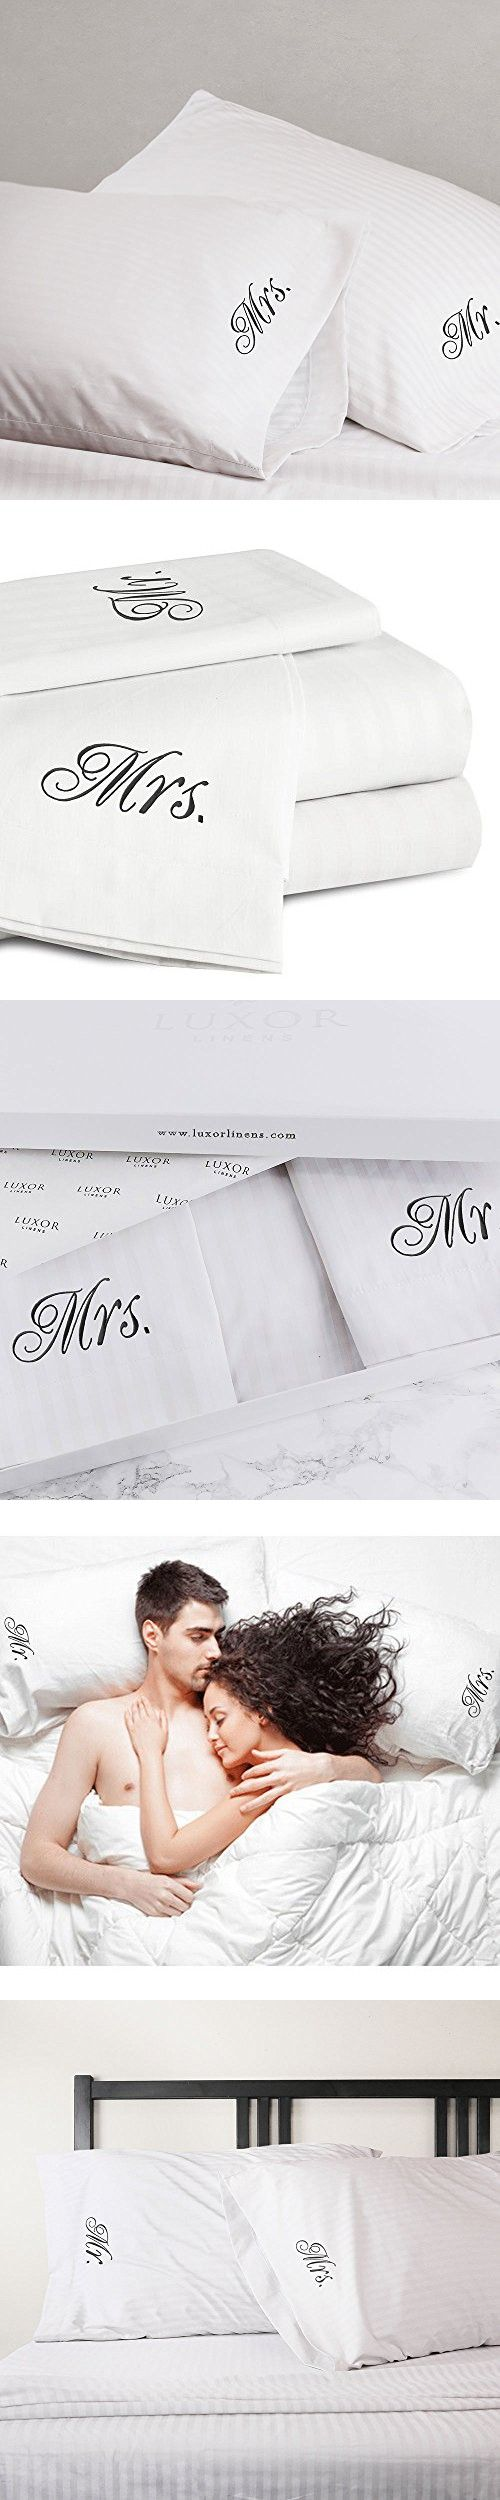 Luxor Linens - 4-Piece Queen Size Sheet Set - Luxury 500 Thread Count Bellagio Collection Cotton Sheet Set - White - Bride & Groom with Signature Gift Packaging - Perfect Wedding Gift!